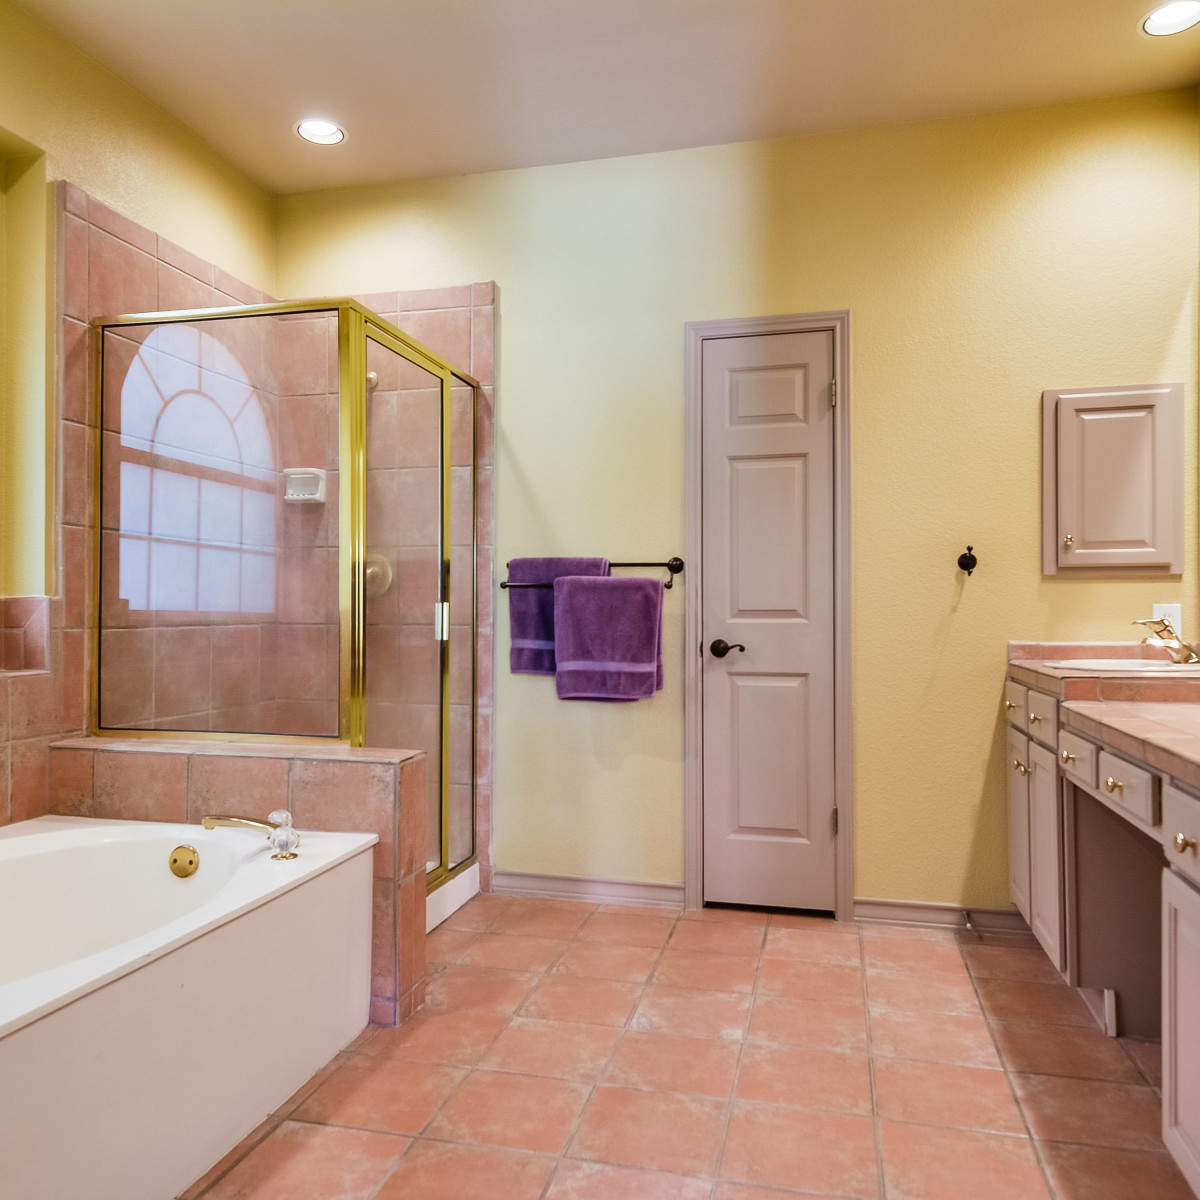 14 Greens Whisper San Antonio house for sale bathroom